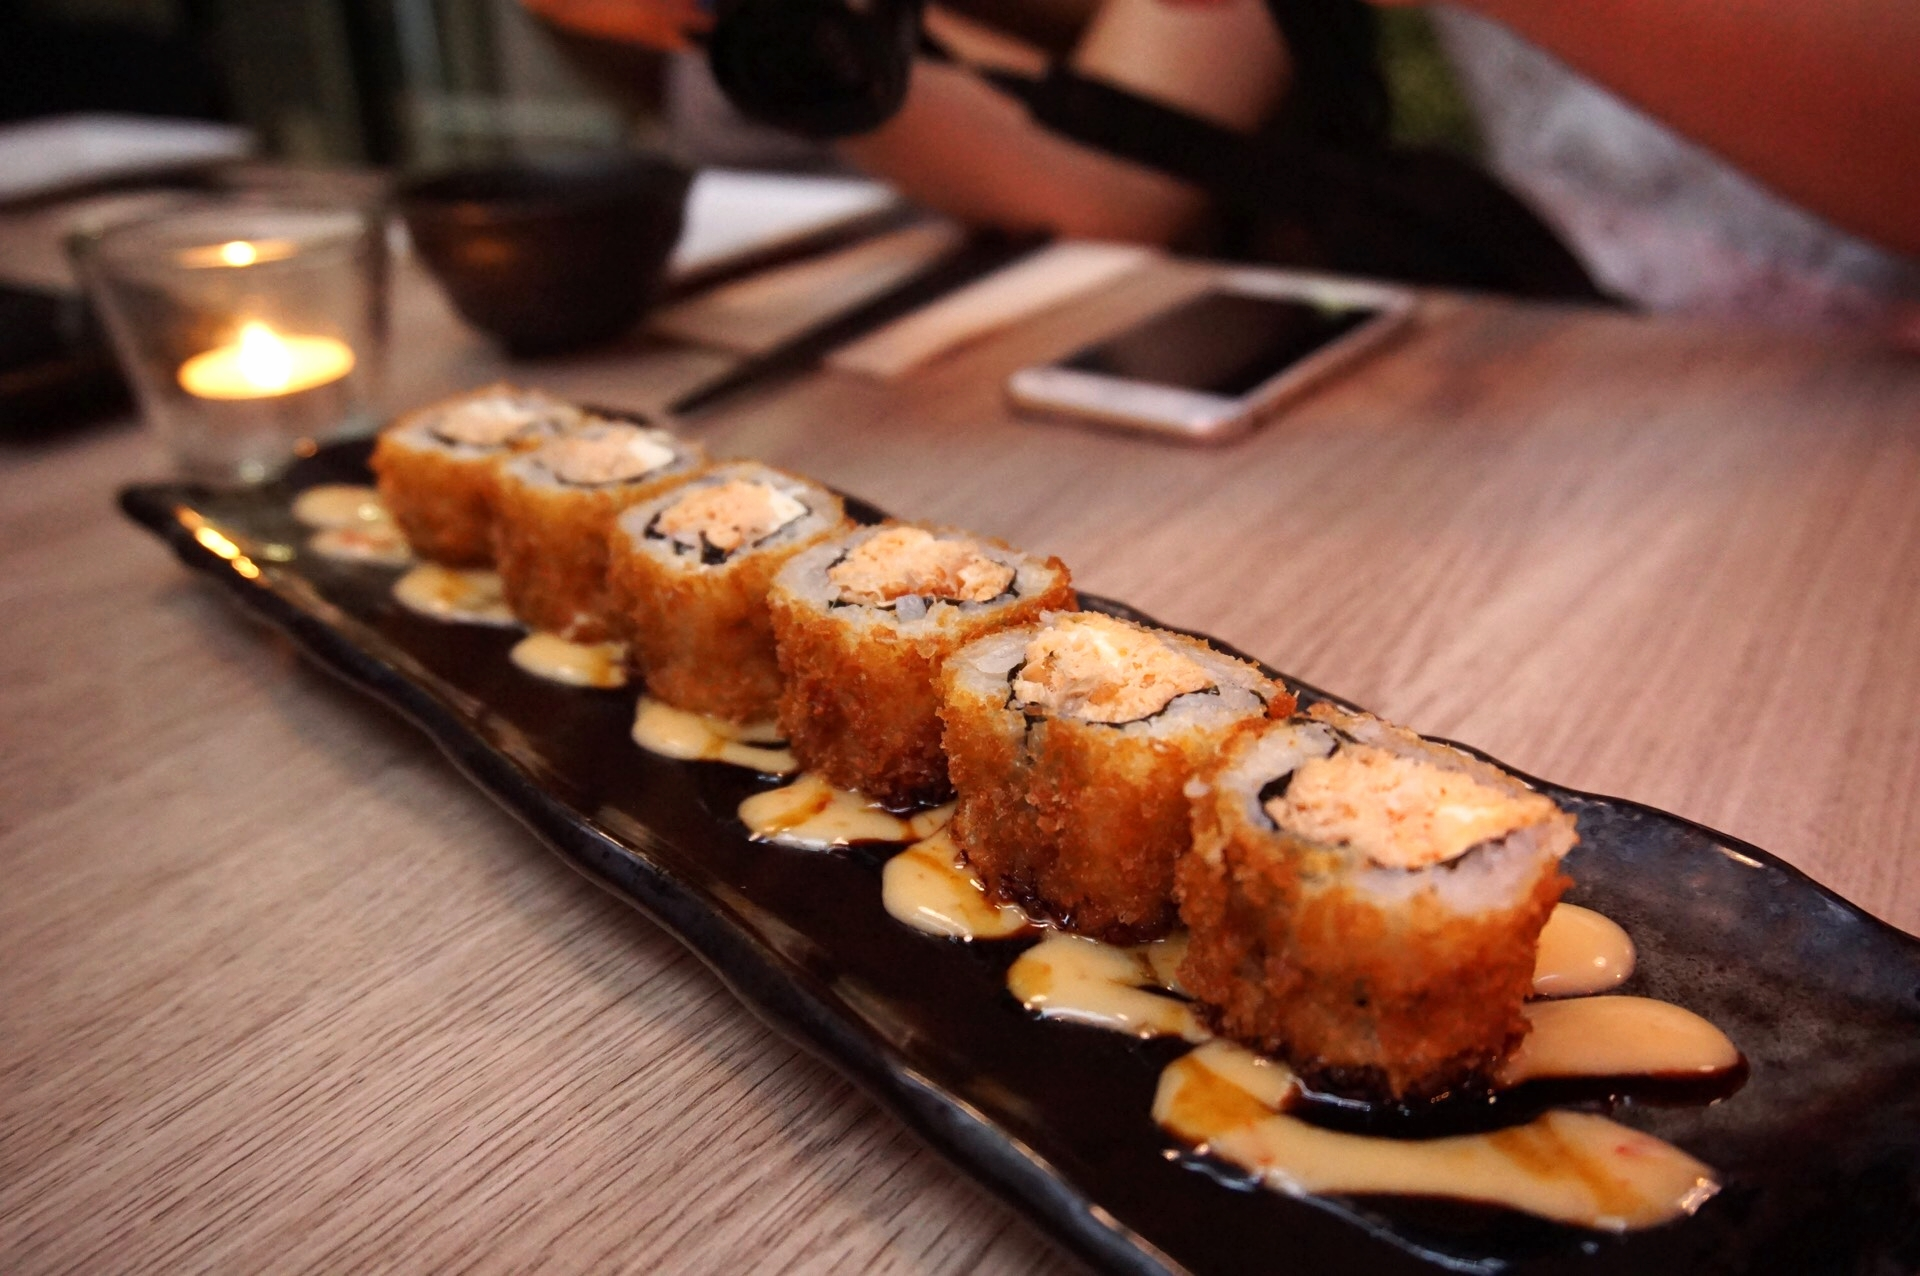 This deep fried sushi roll is very delicious!